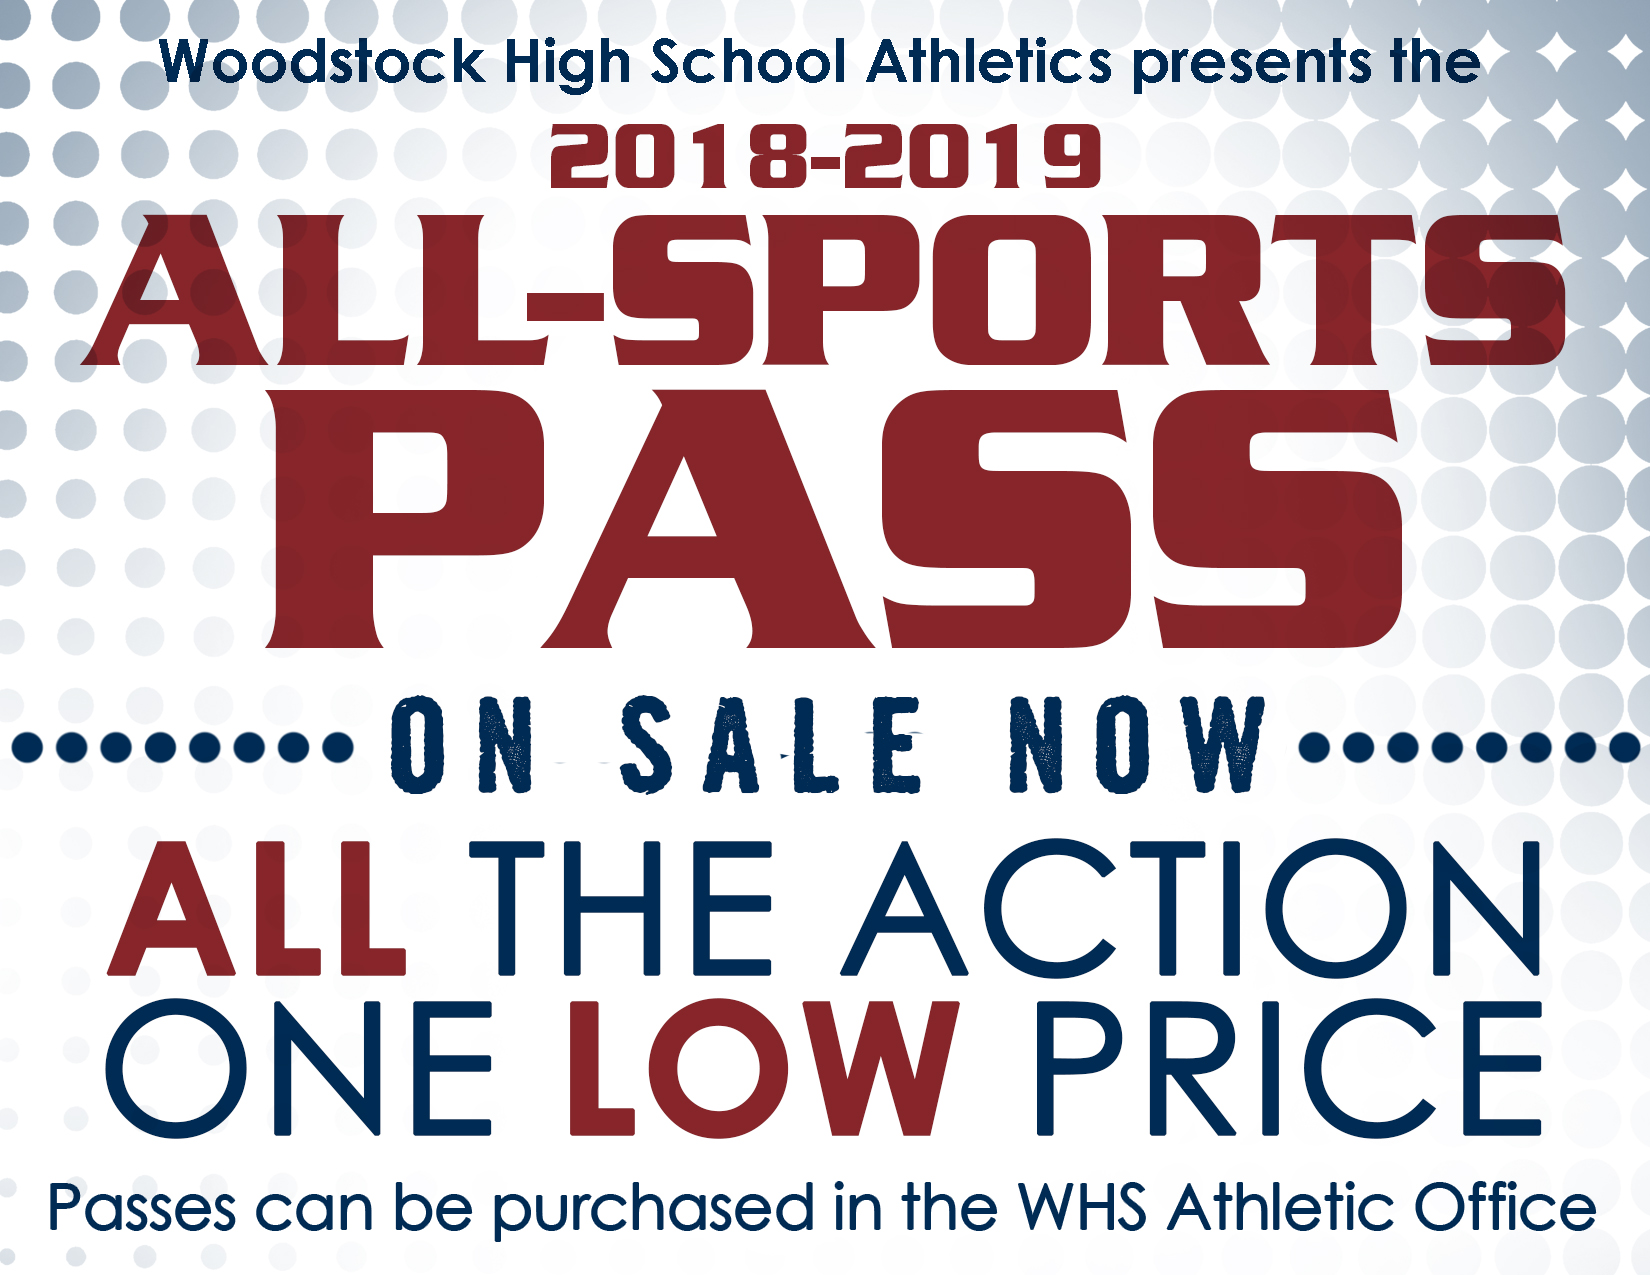 All Sports Passes On Sale Now!